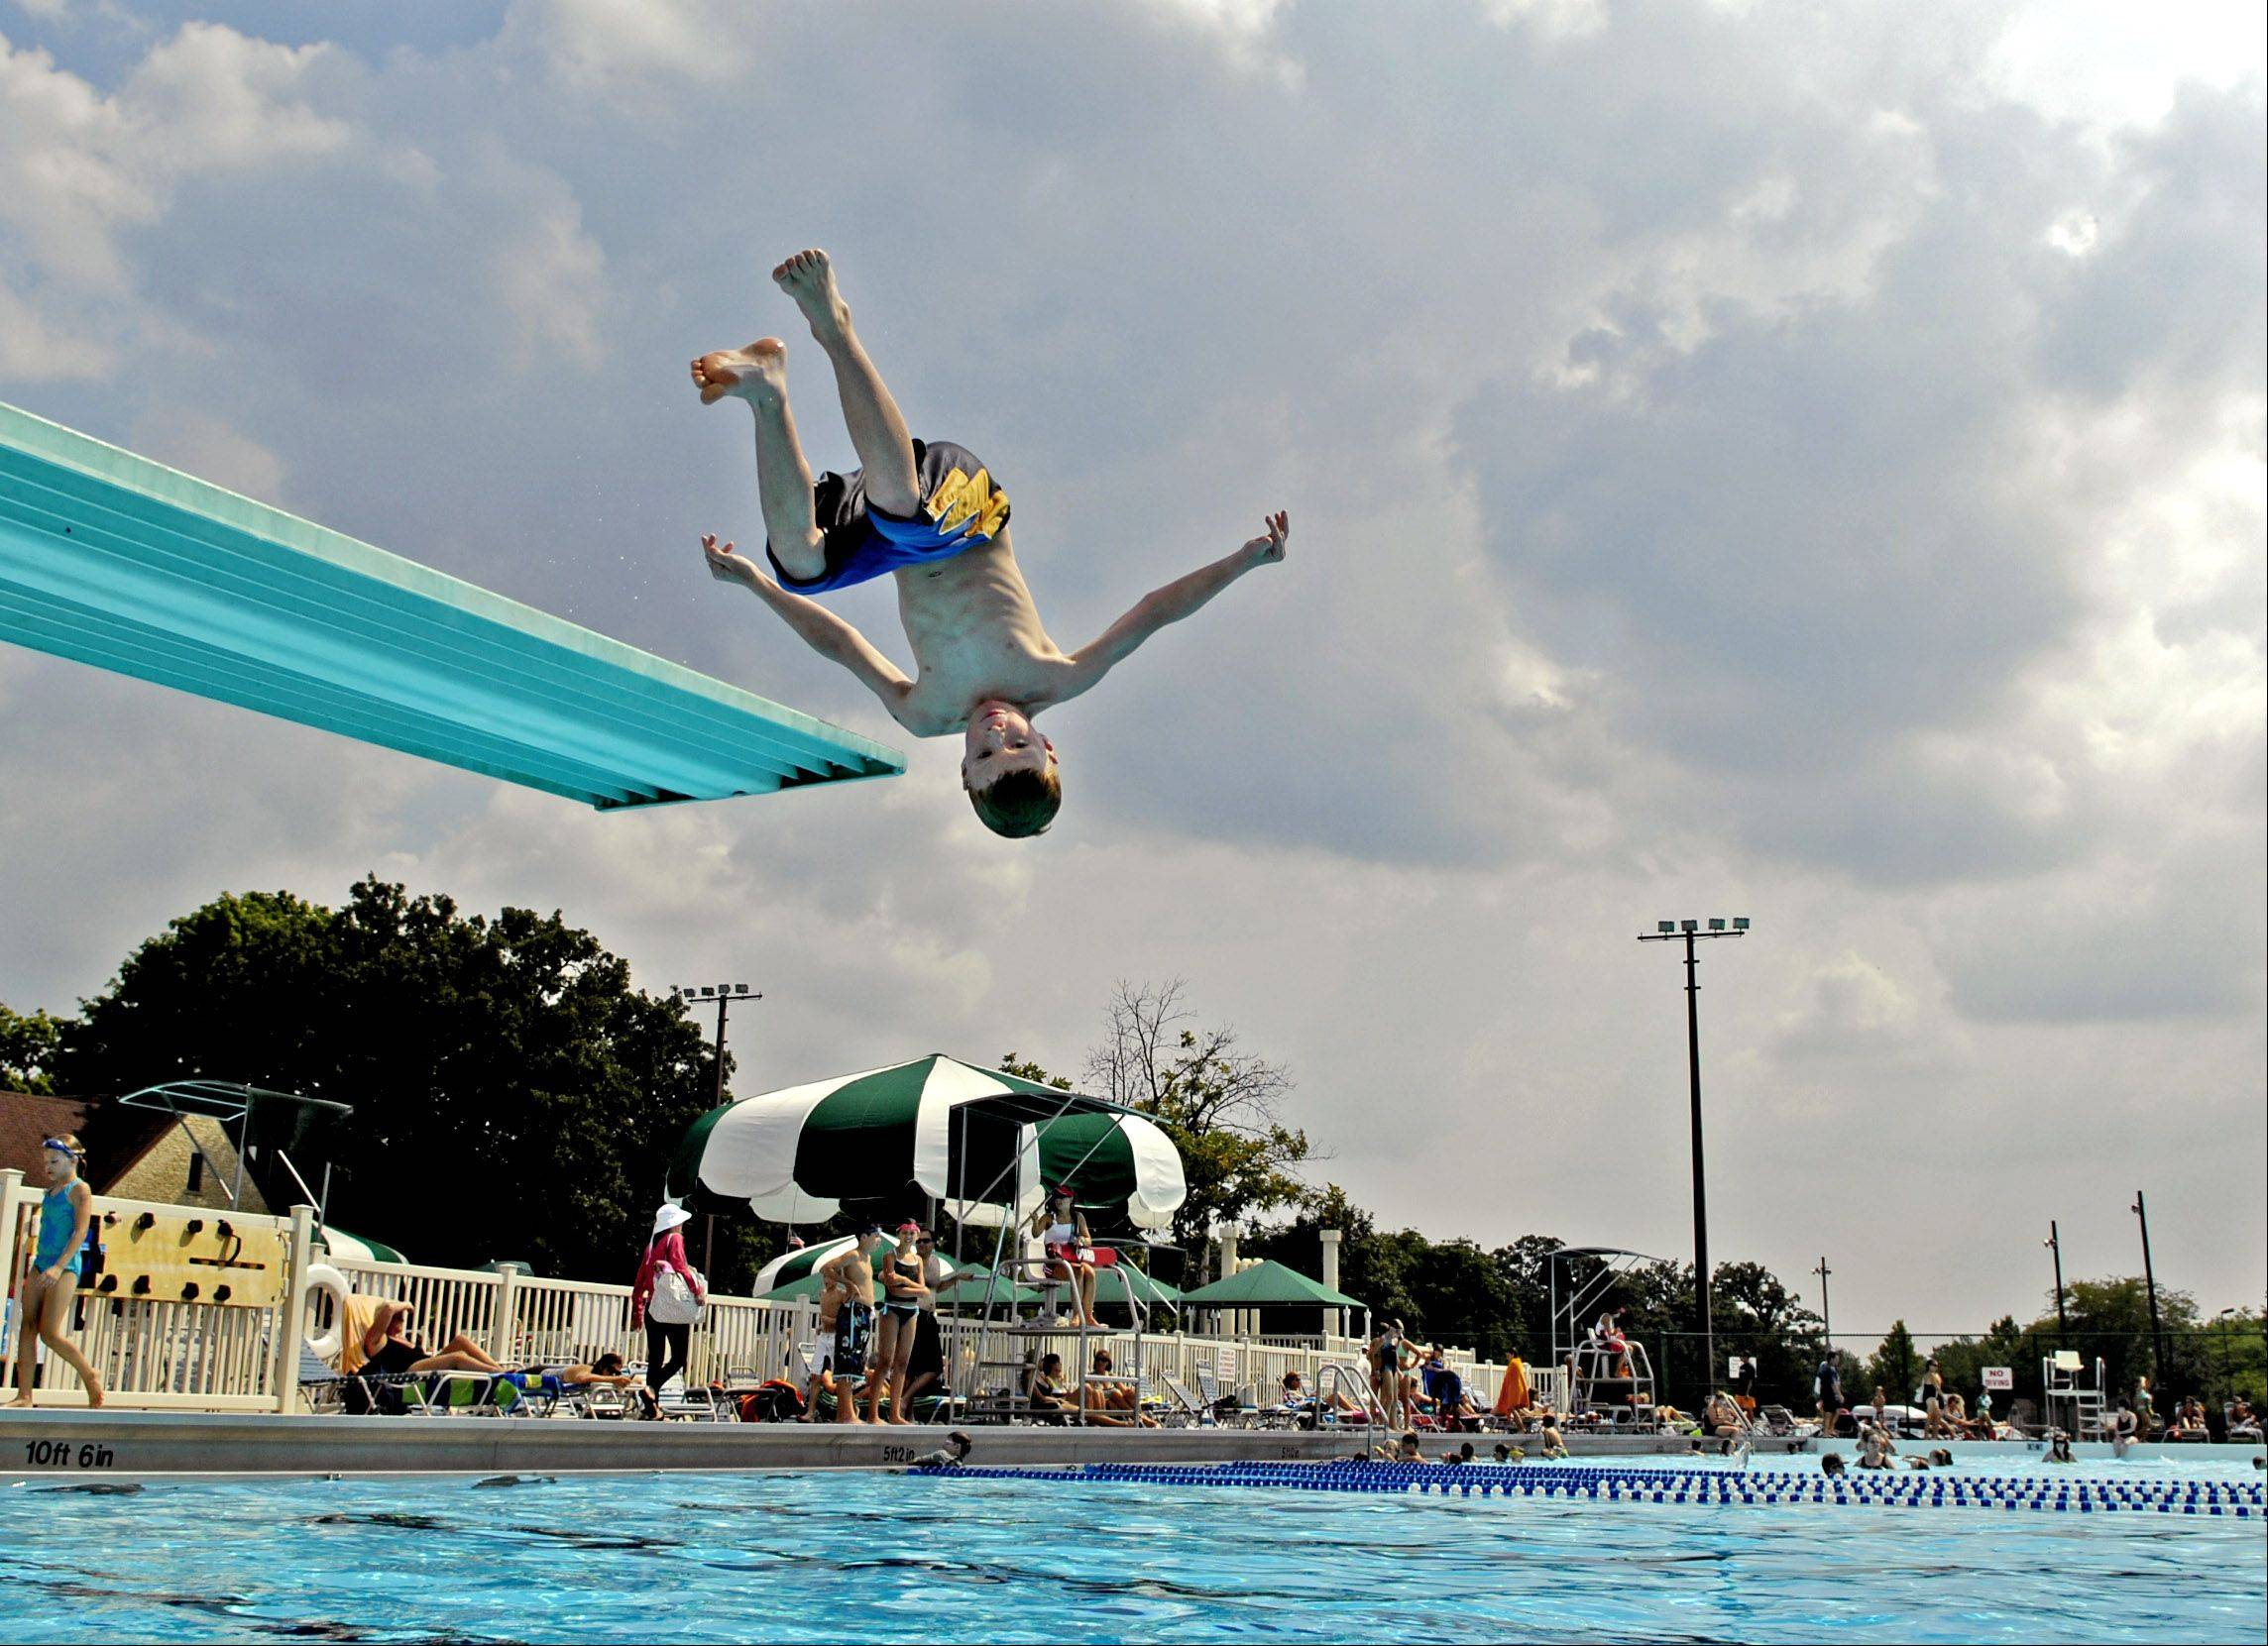 Ryan Summerwill, 9, of St. Charles does a flip off the diving board while enjoying summer at Pottawatomie Pool in St. Charles.